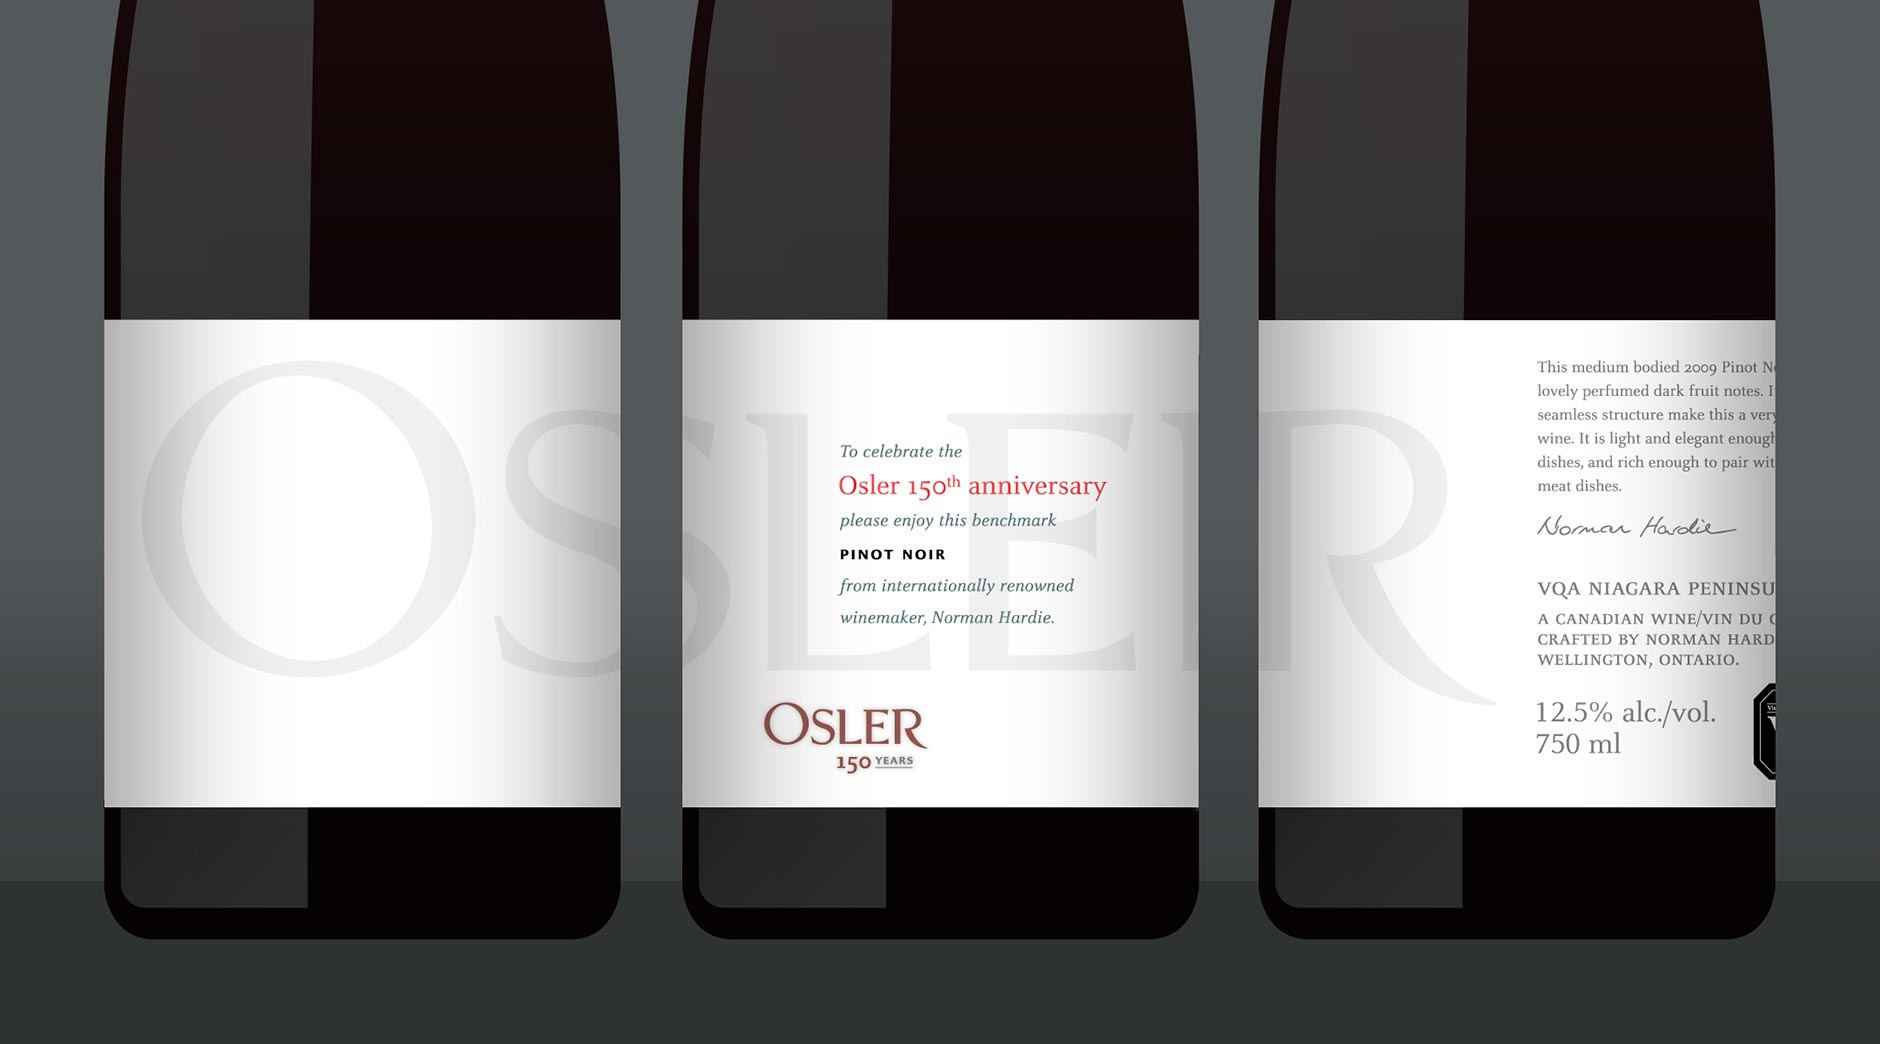 Osler 150 wine bottle